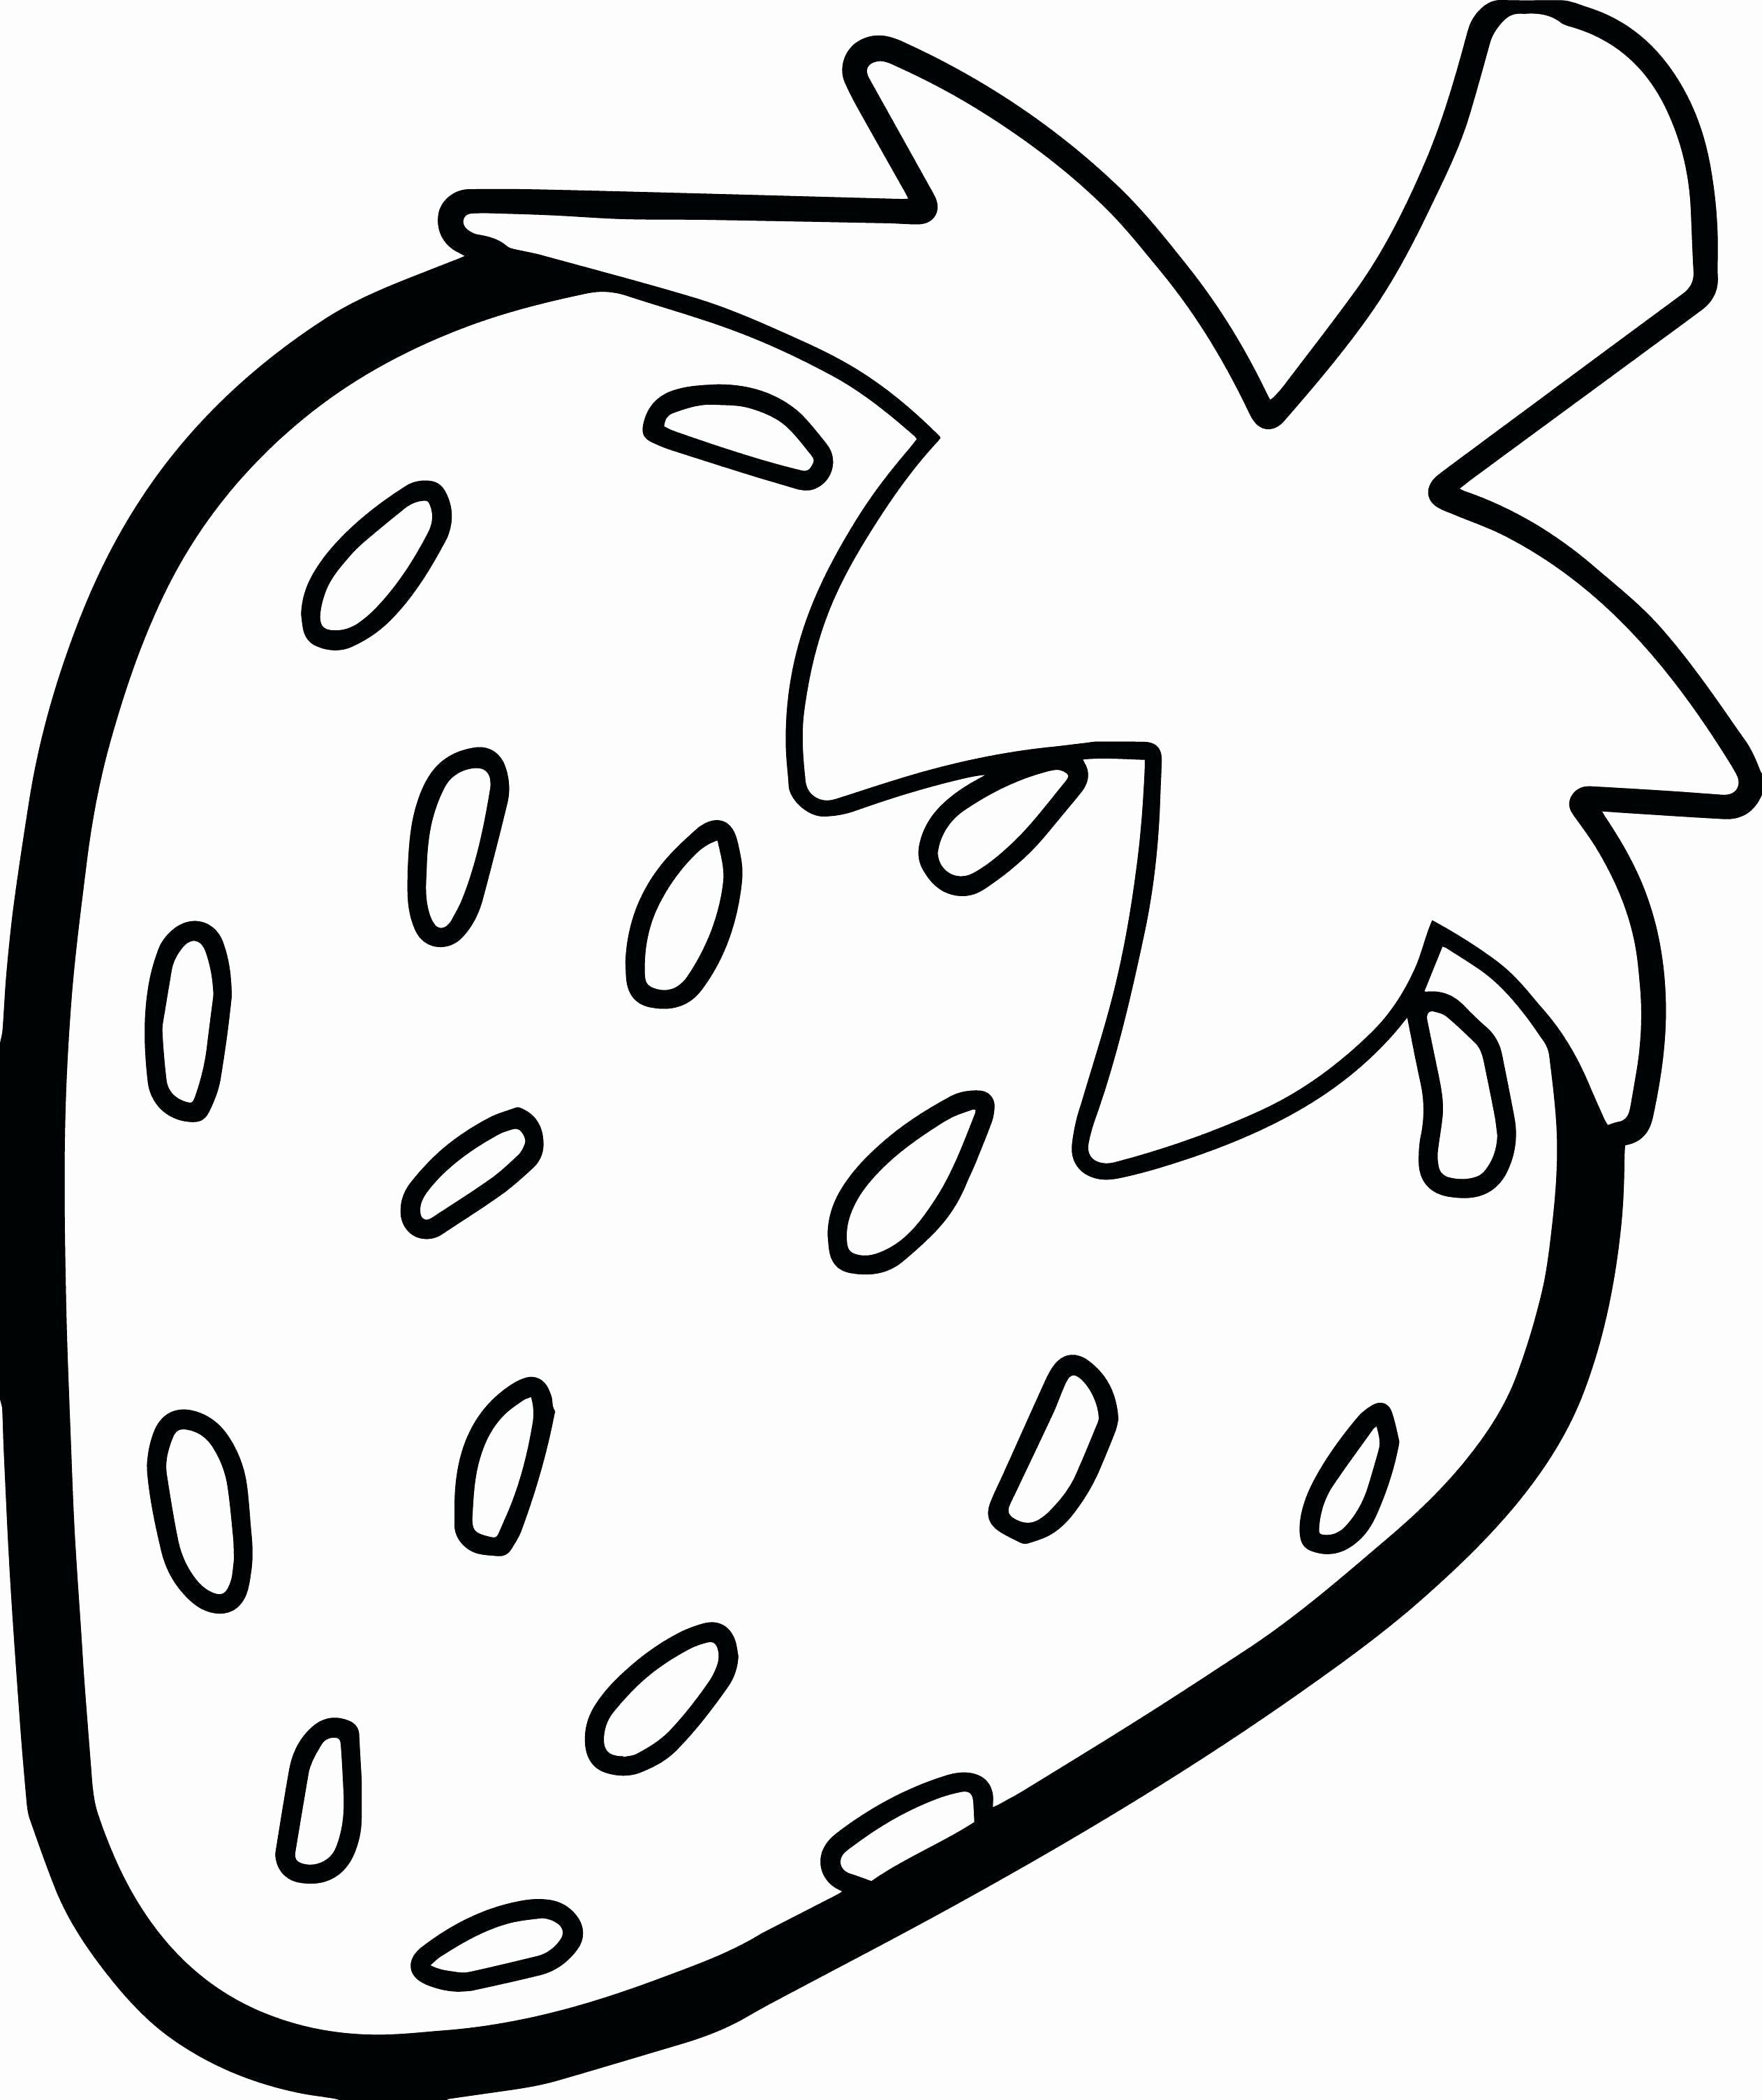 Fruit Coloring Outline New Virginia Coloring Page Allurepaper